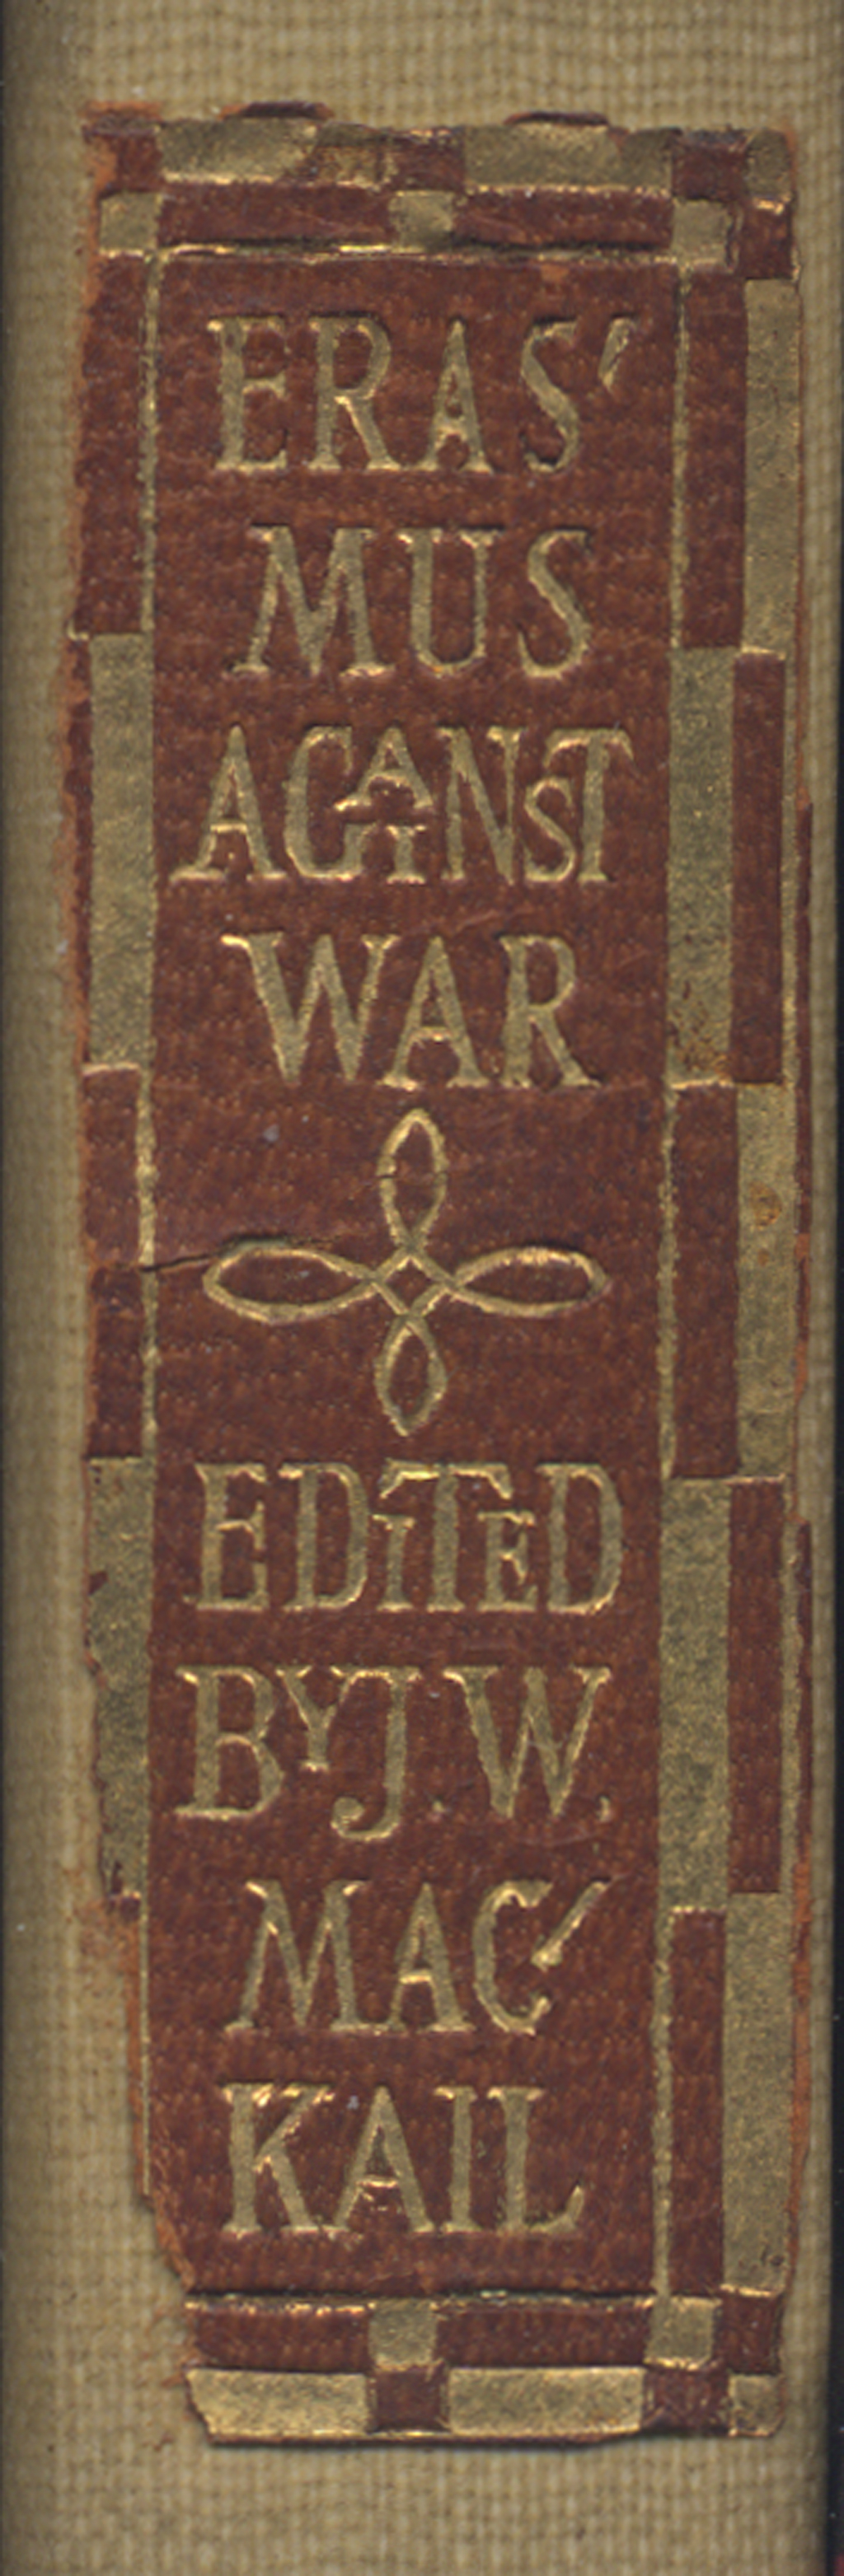 Label for spine of Against War by Erasmus (Boston: The Merrymount Press, 1907). Lettering by W.A. Dwiggins.